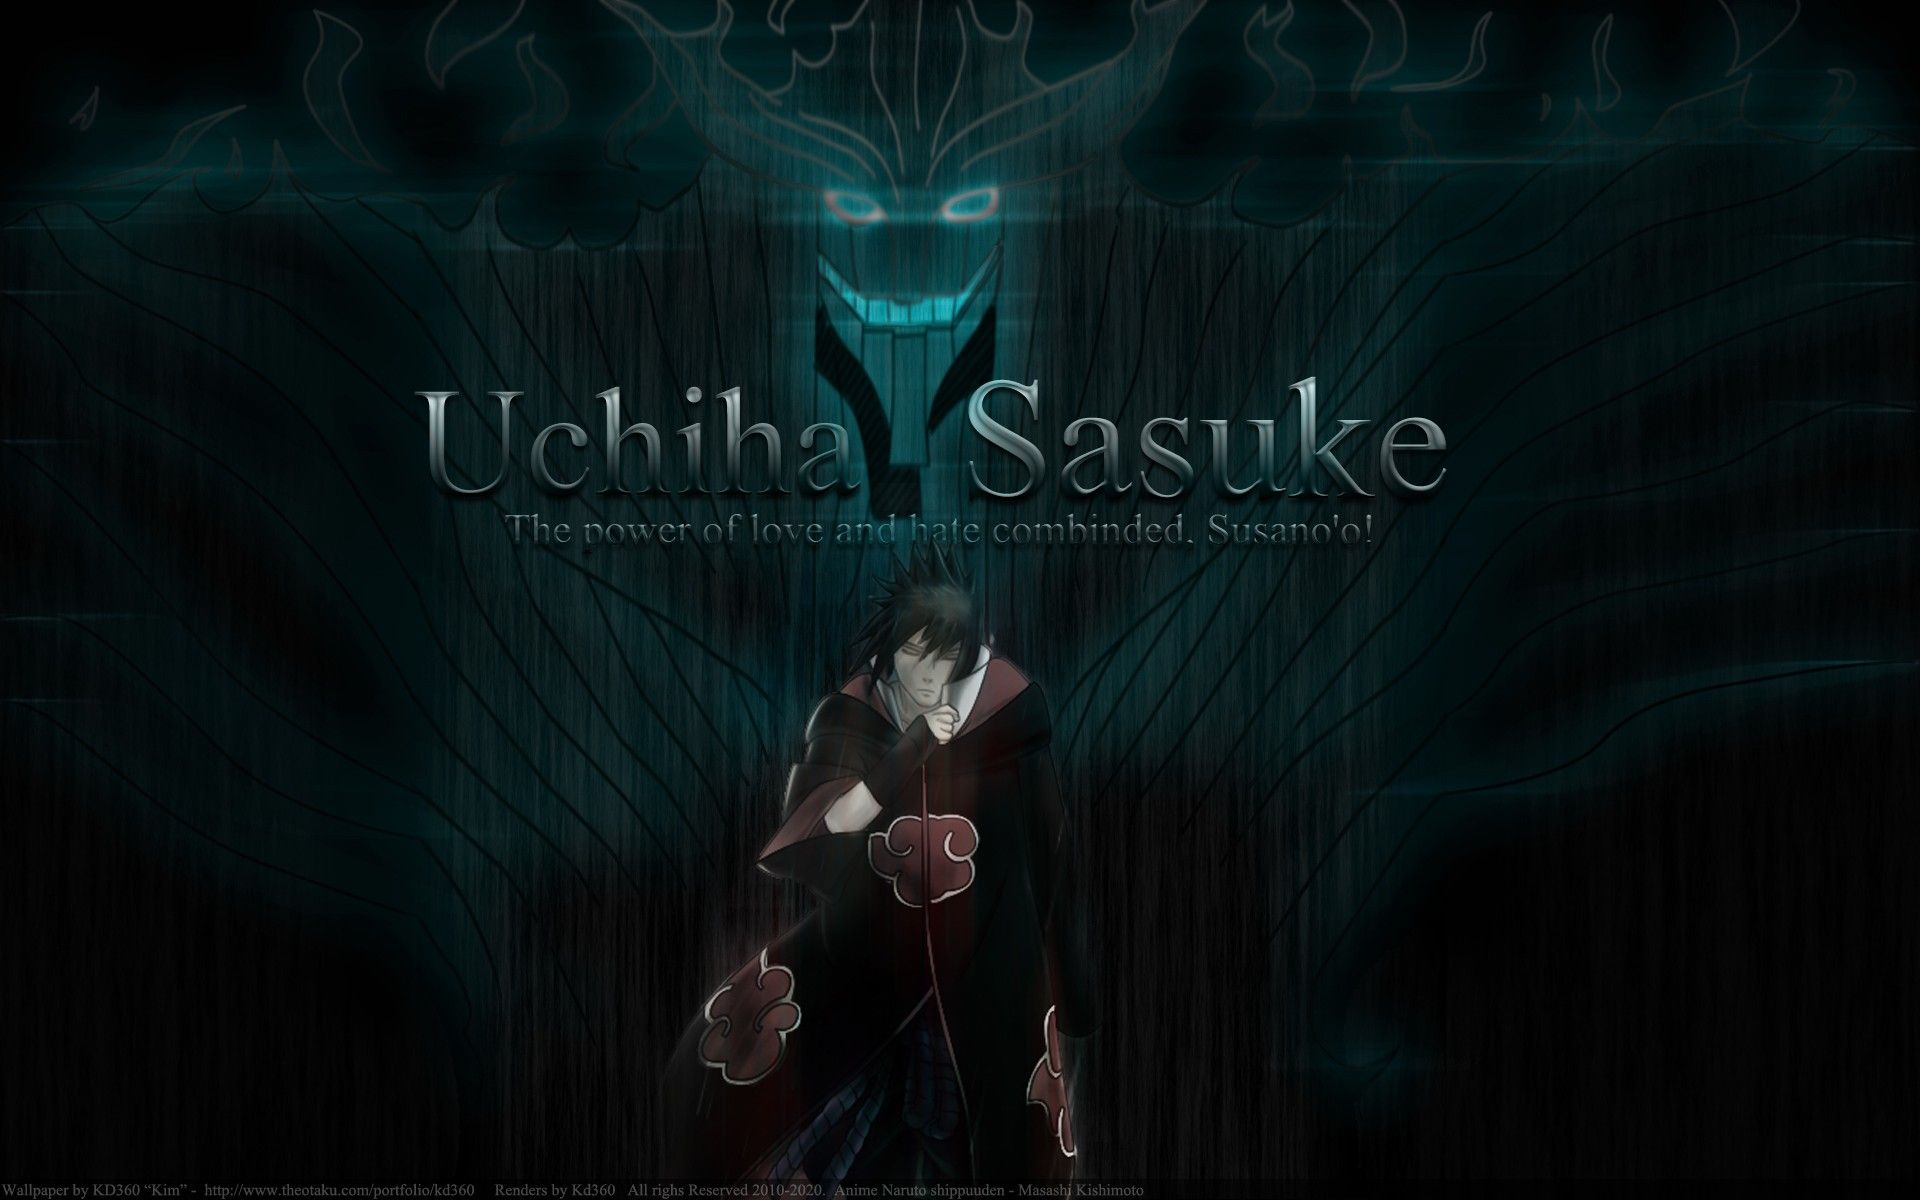 Sasuke wallpapers hd wallpaper hd wallpapers pinterest sasuke sasuke wallpapers hd wallpaper voltagebd Image collections